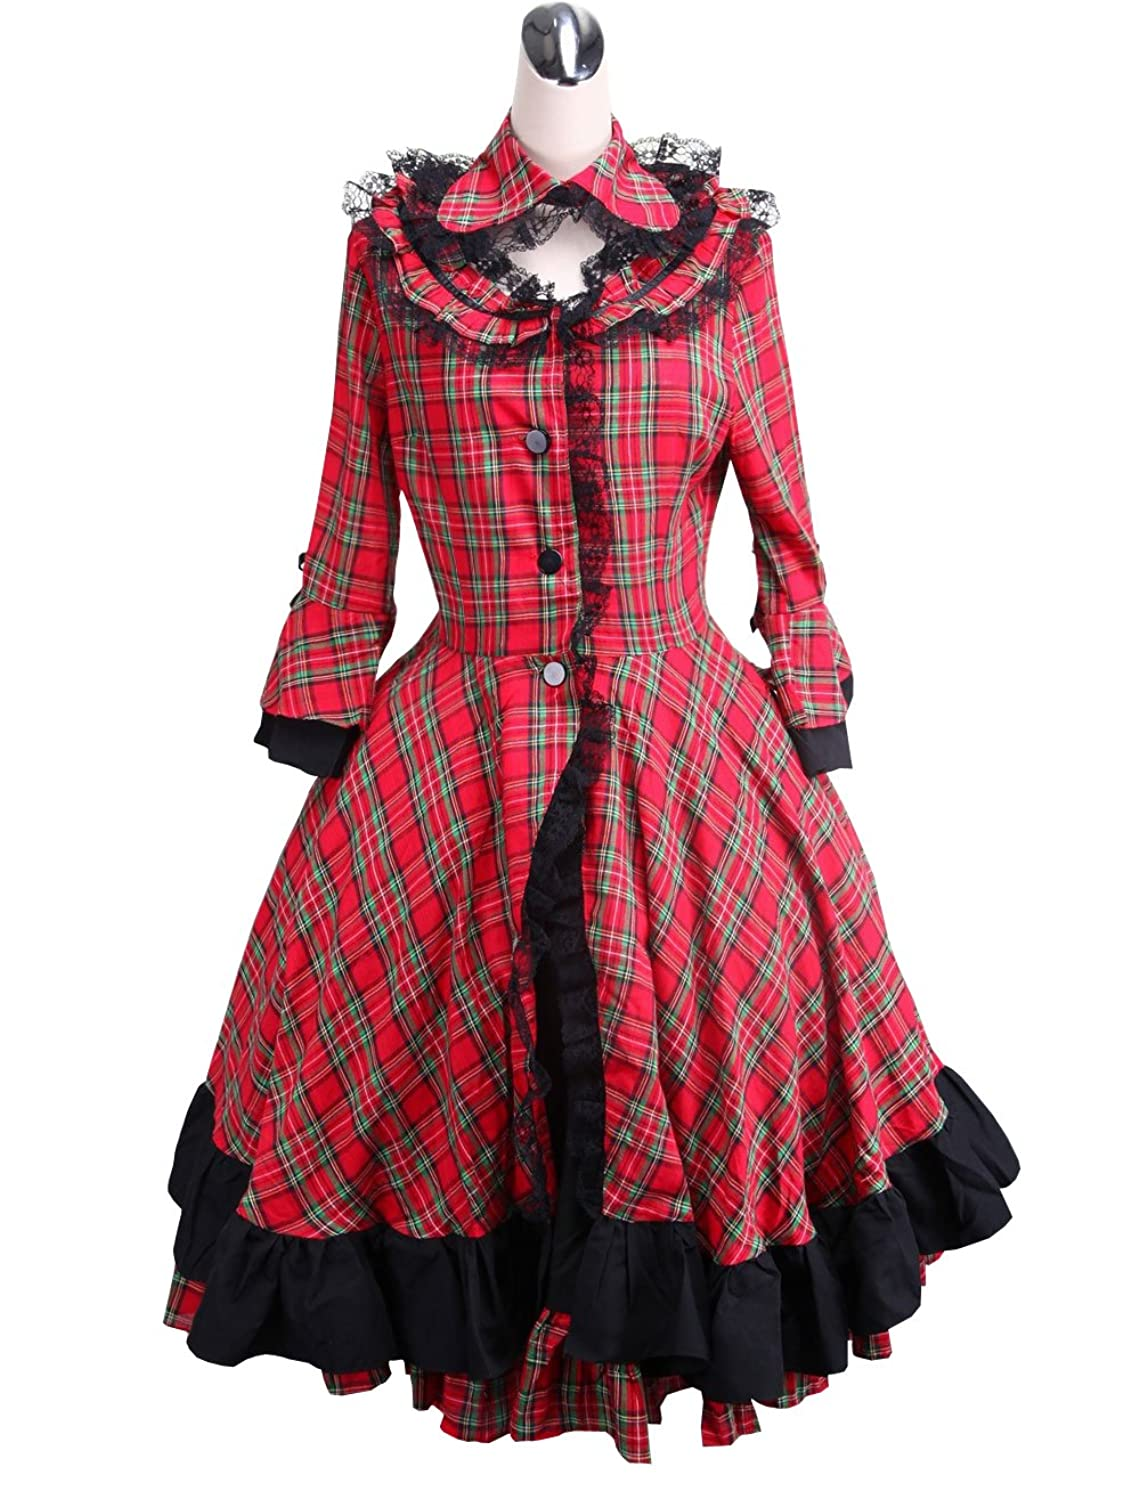 Vintage Style Children's Clothing: Girls, Boys, Baby, Toddler Plaid Cotton Black Lace Classic Victorian Lolita Cosplay Coat Dress $58.99 AT vintagedancer.com